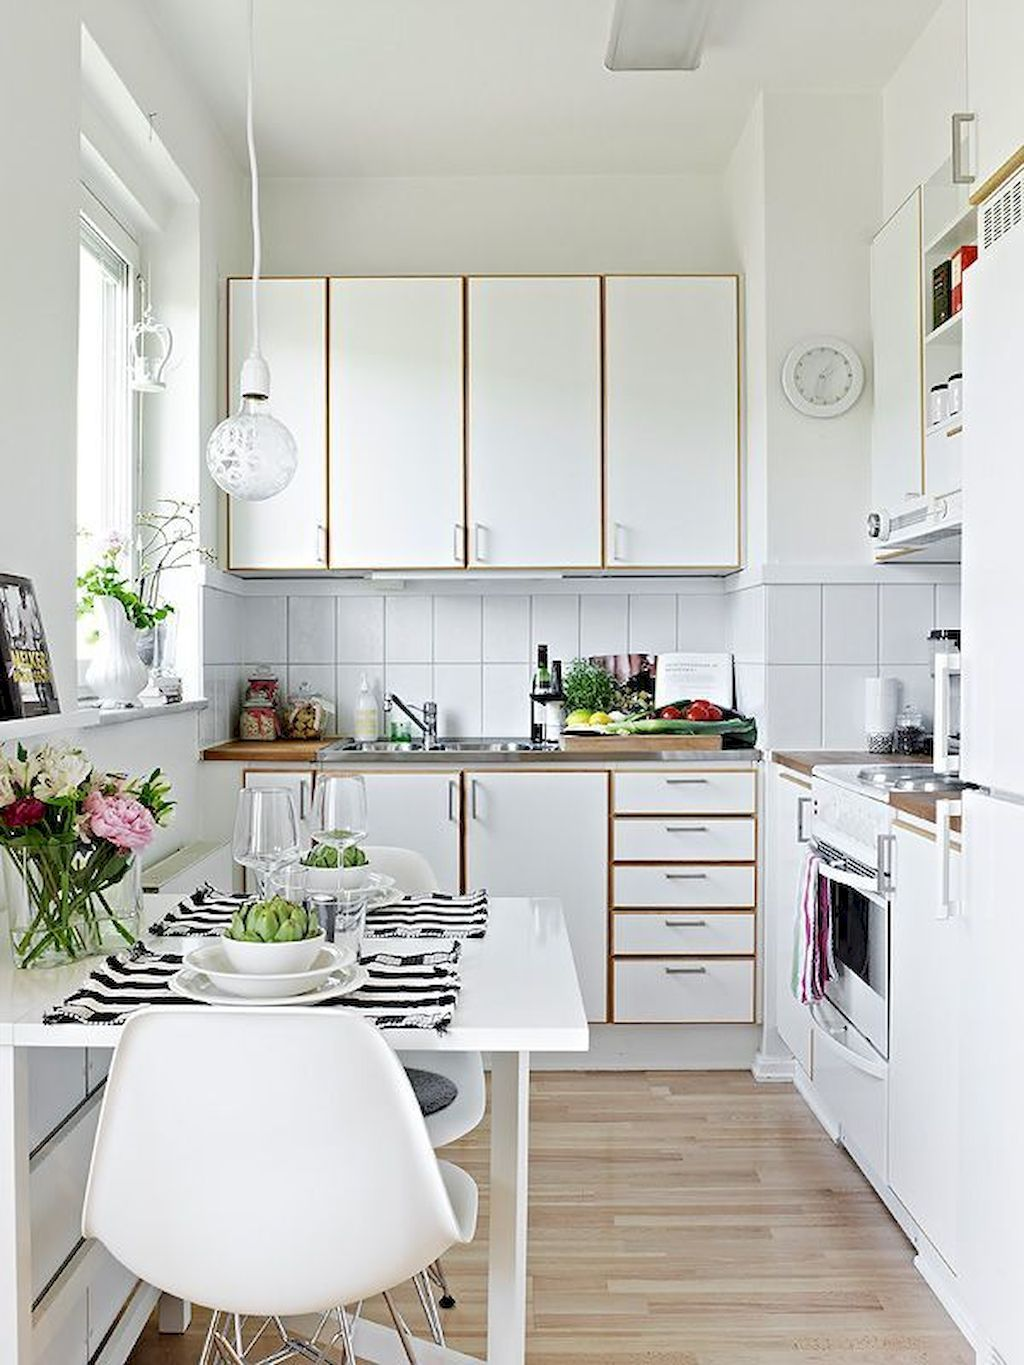 Adorable awesome apartment kitchen decorating ideas